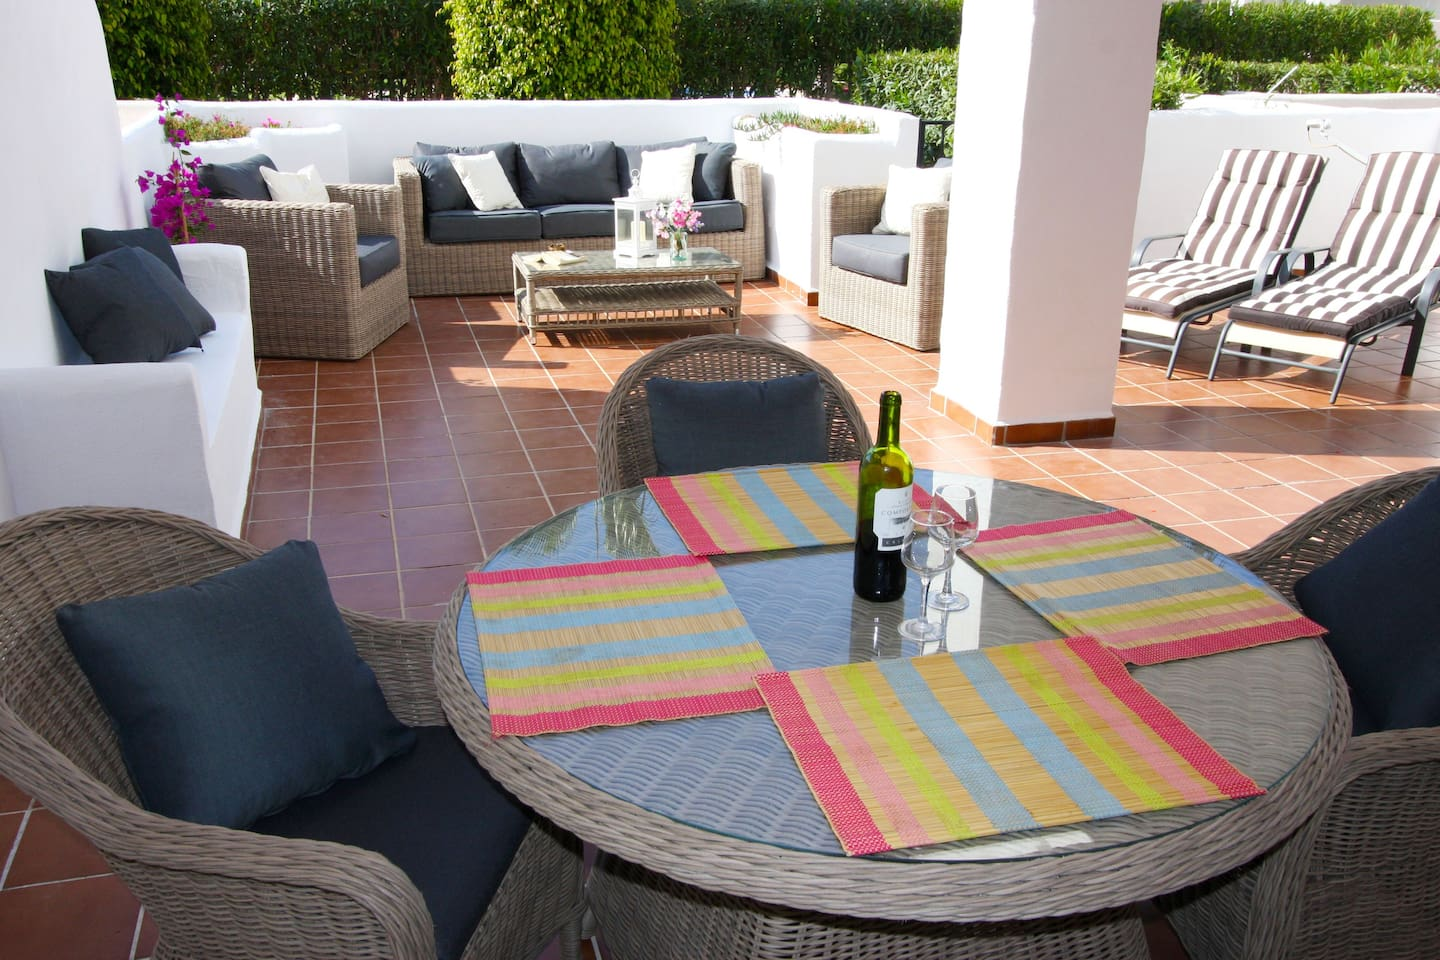 Large terrace with new wicker sofas, table and chairs. 4 sunbeds.